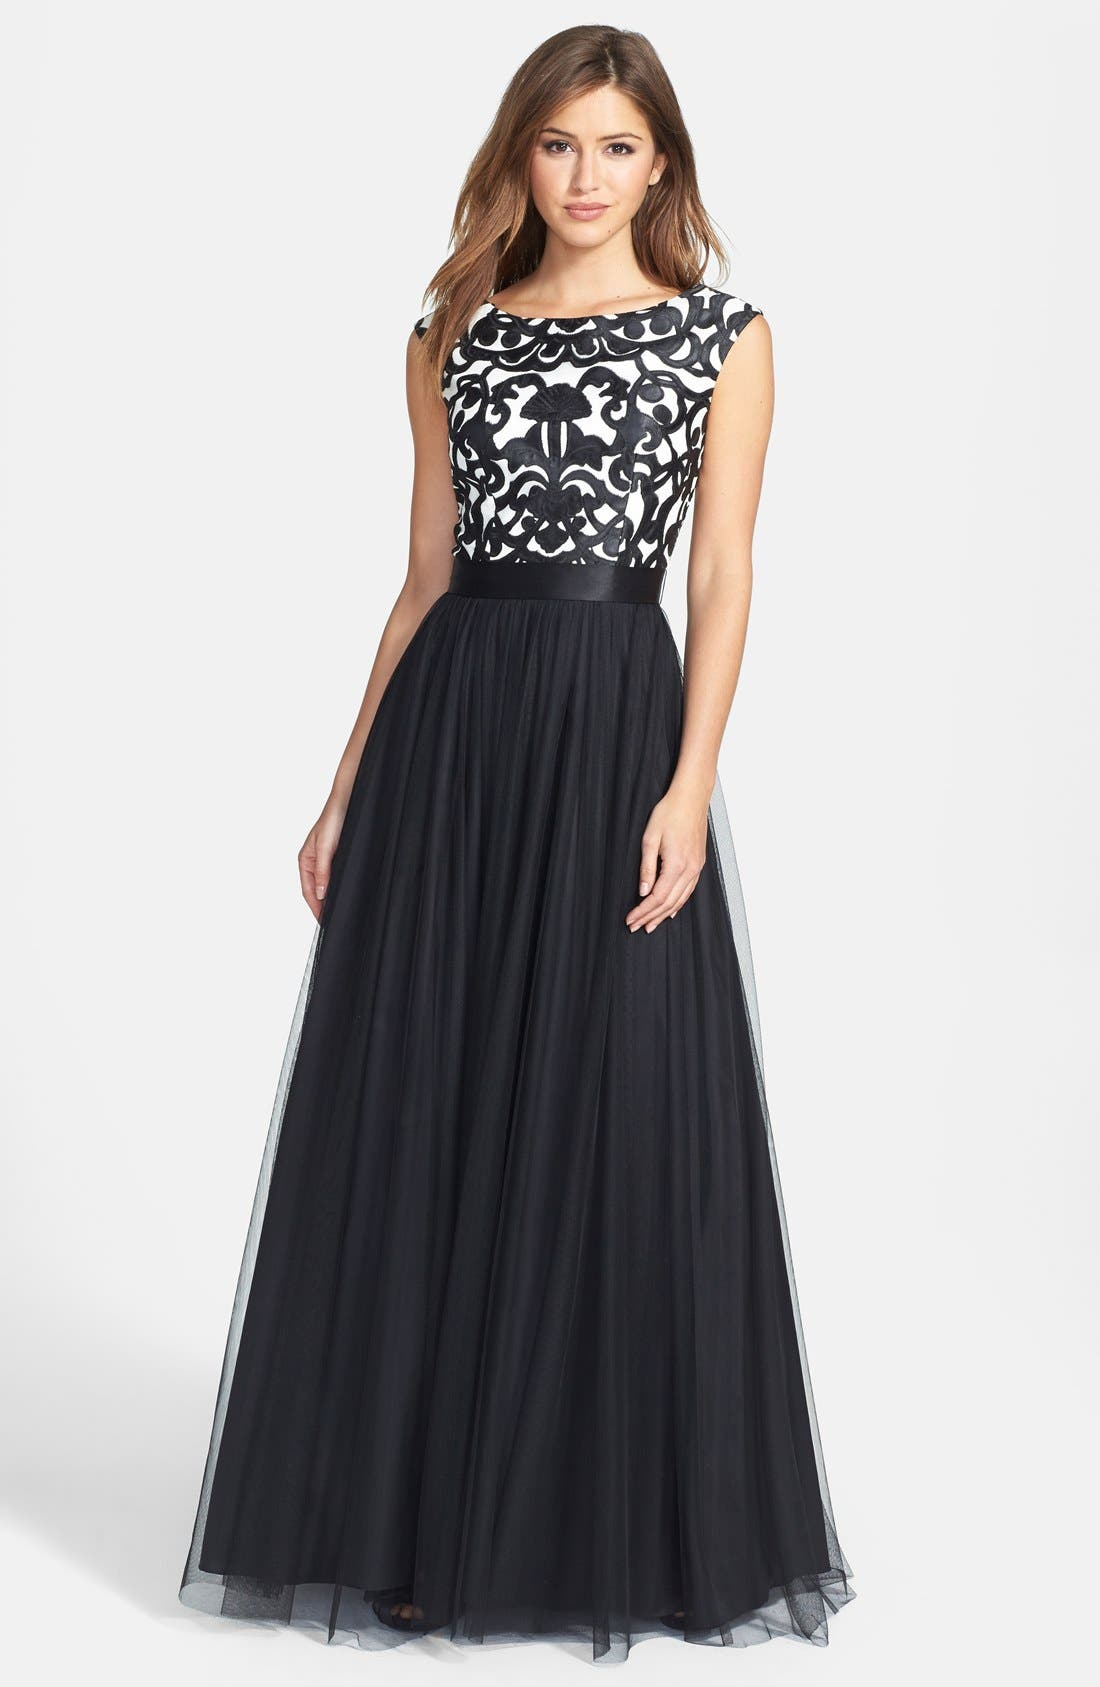 Alternate Image 1 Selected - Aidan Mattox Embroidered Bodice Mesh Ballgown